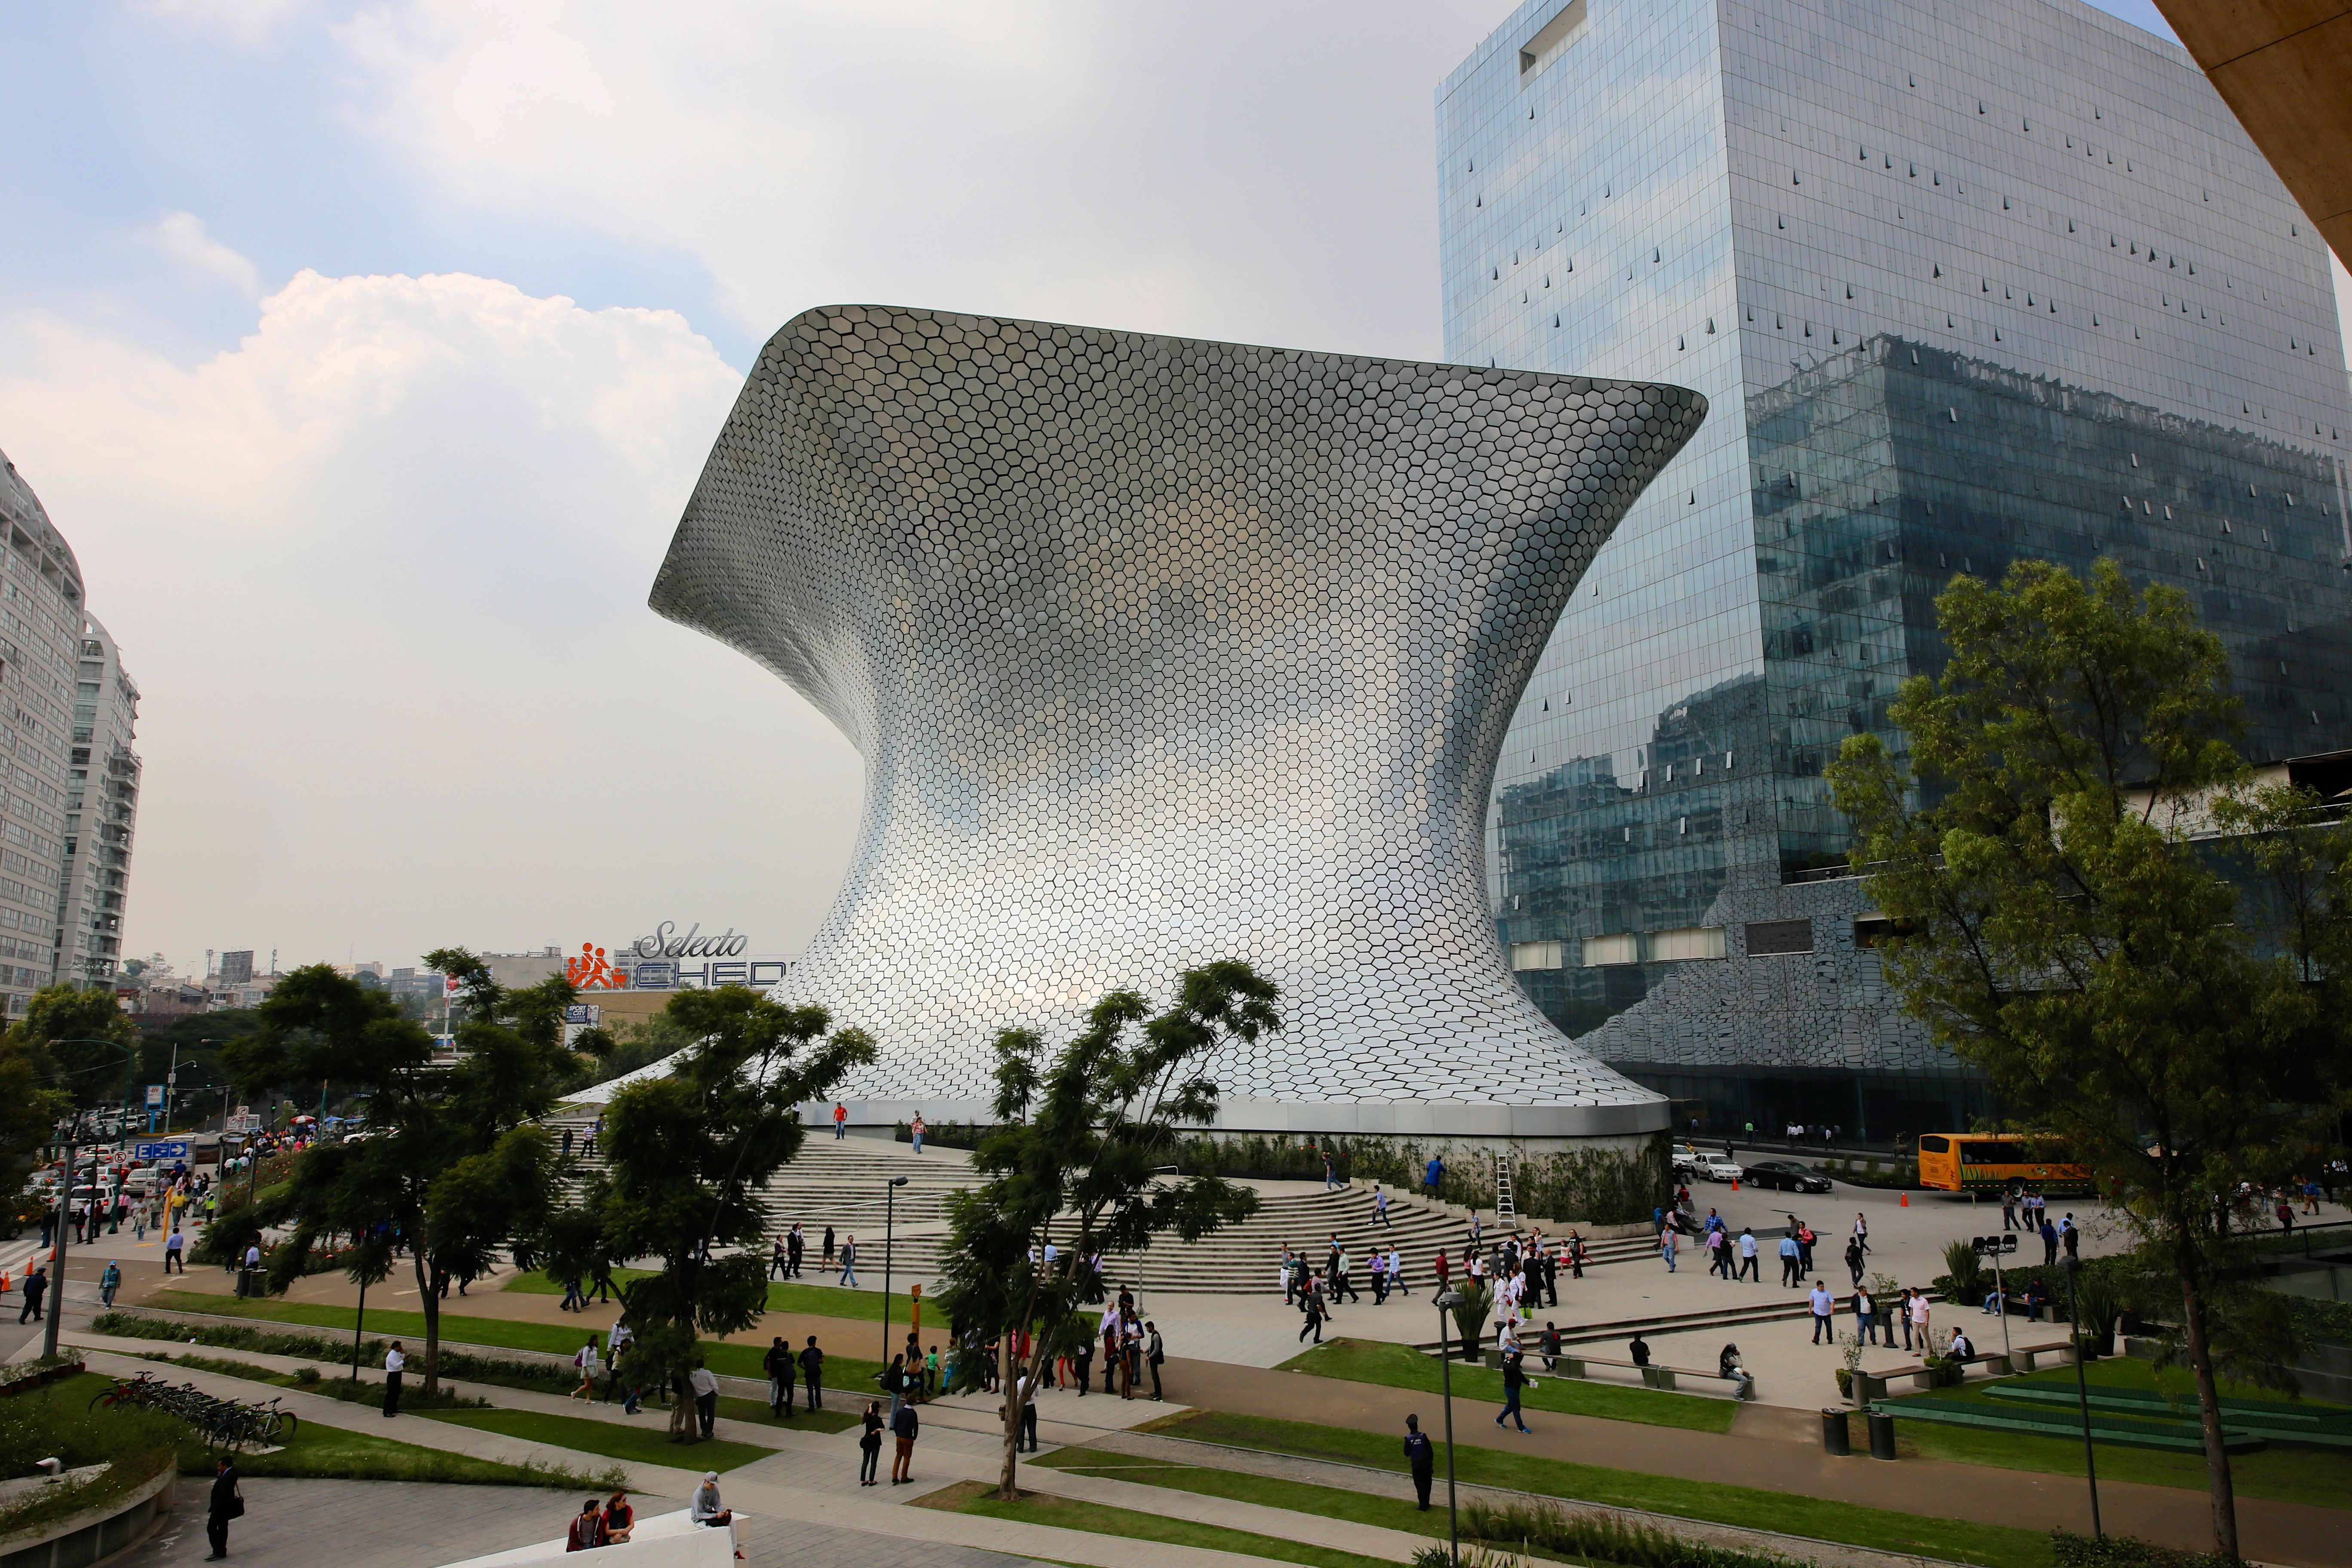 Shiny silver metal geometry of the Soumaya Museum in Mexico City